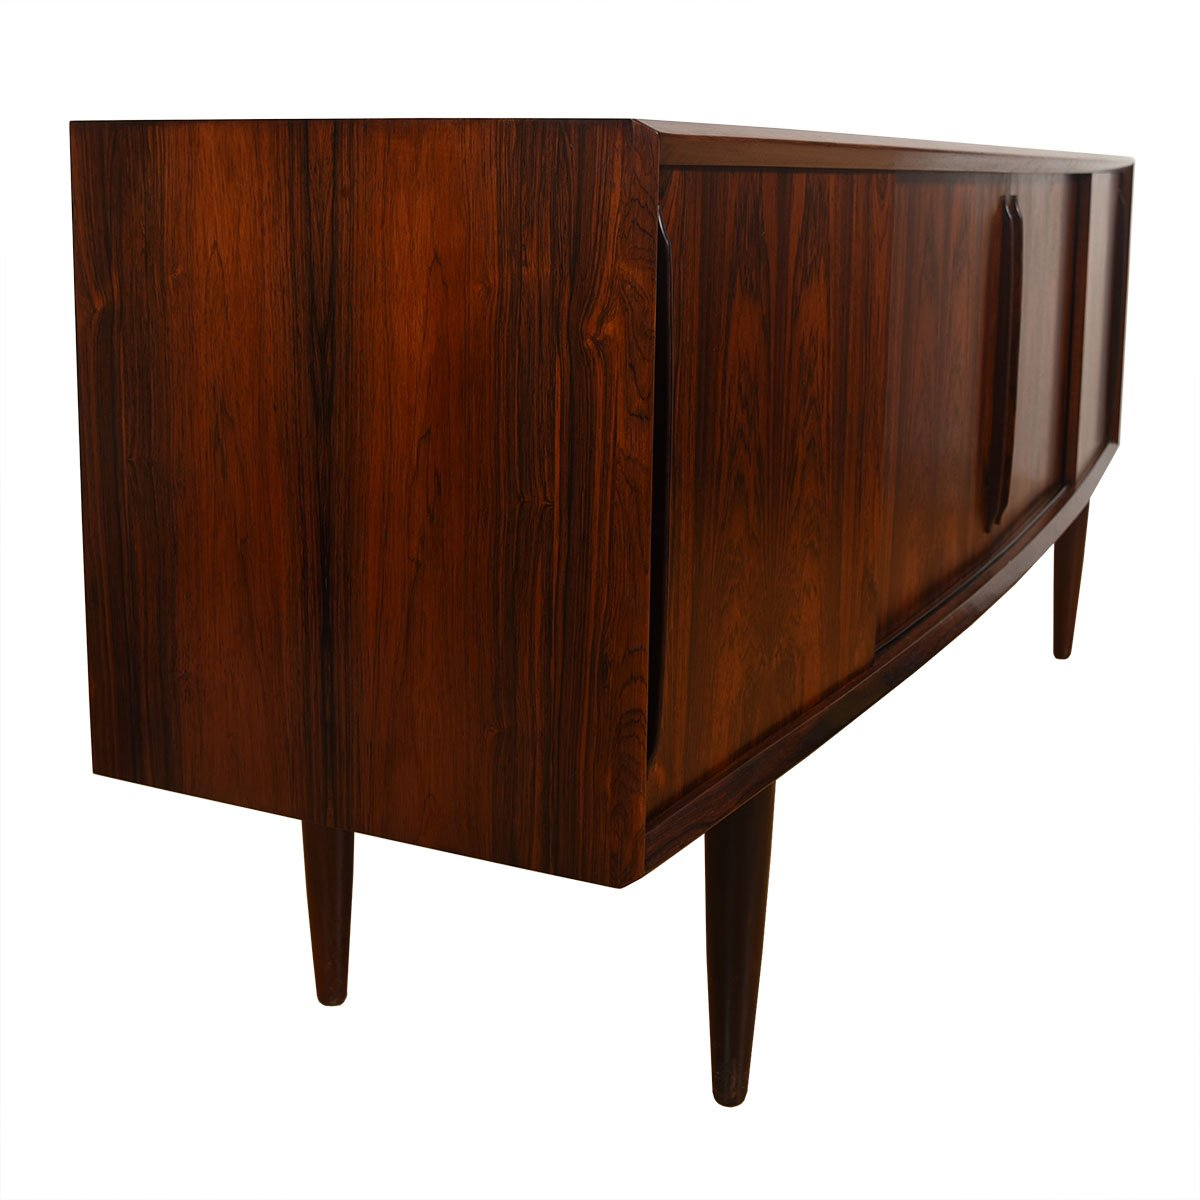 Bowed Front Danish Rosewood Sliding Door Sideboard / Credenza